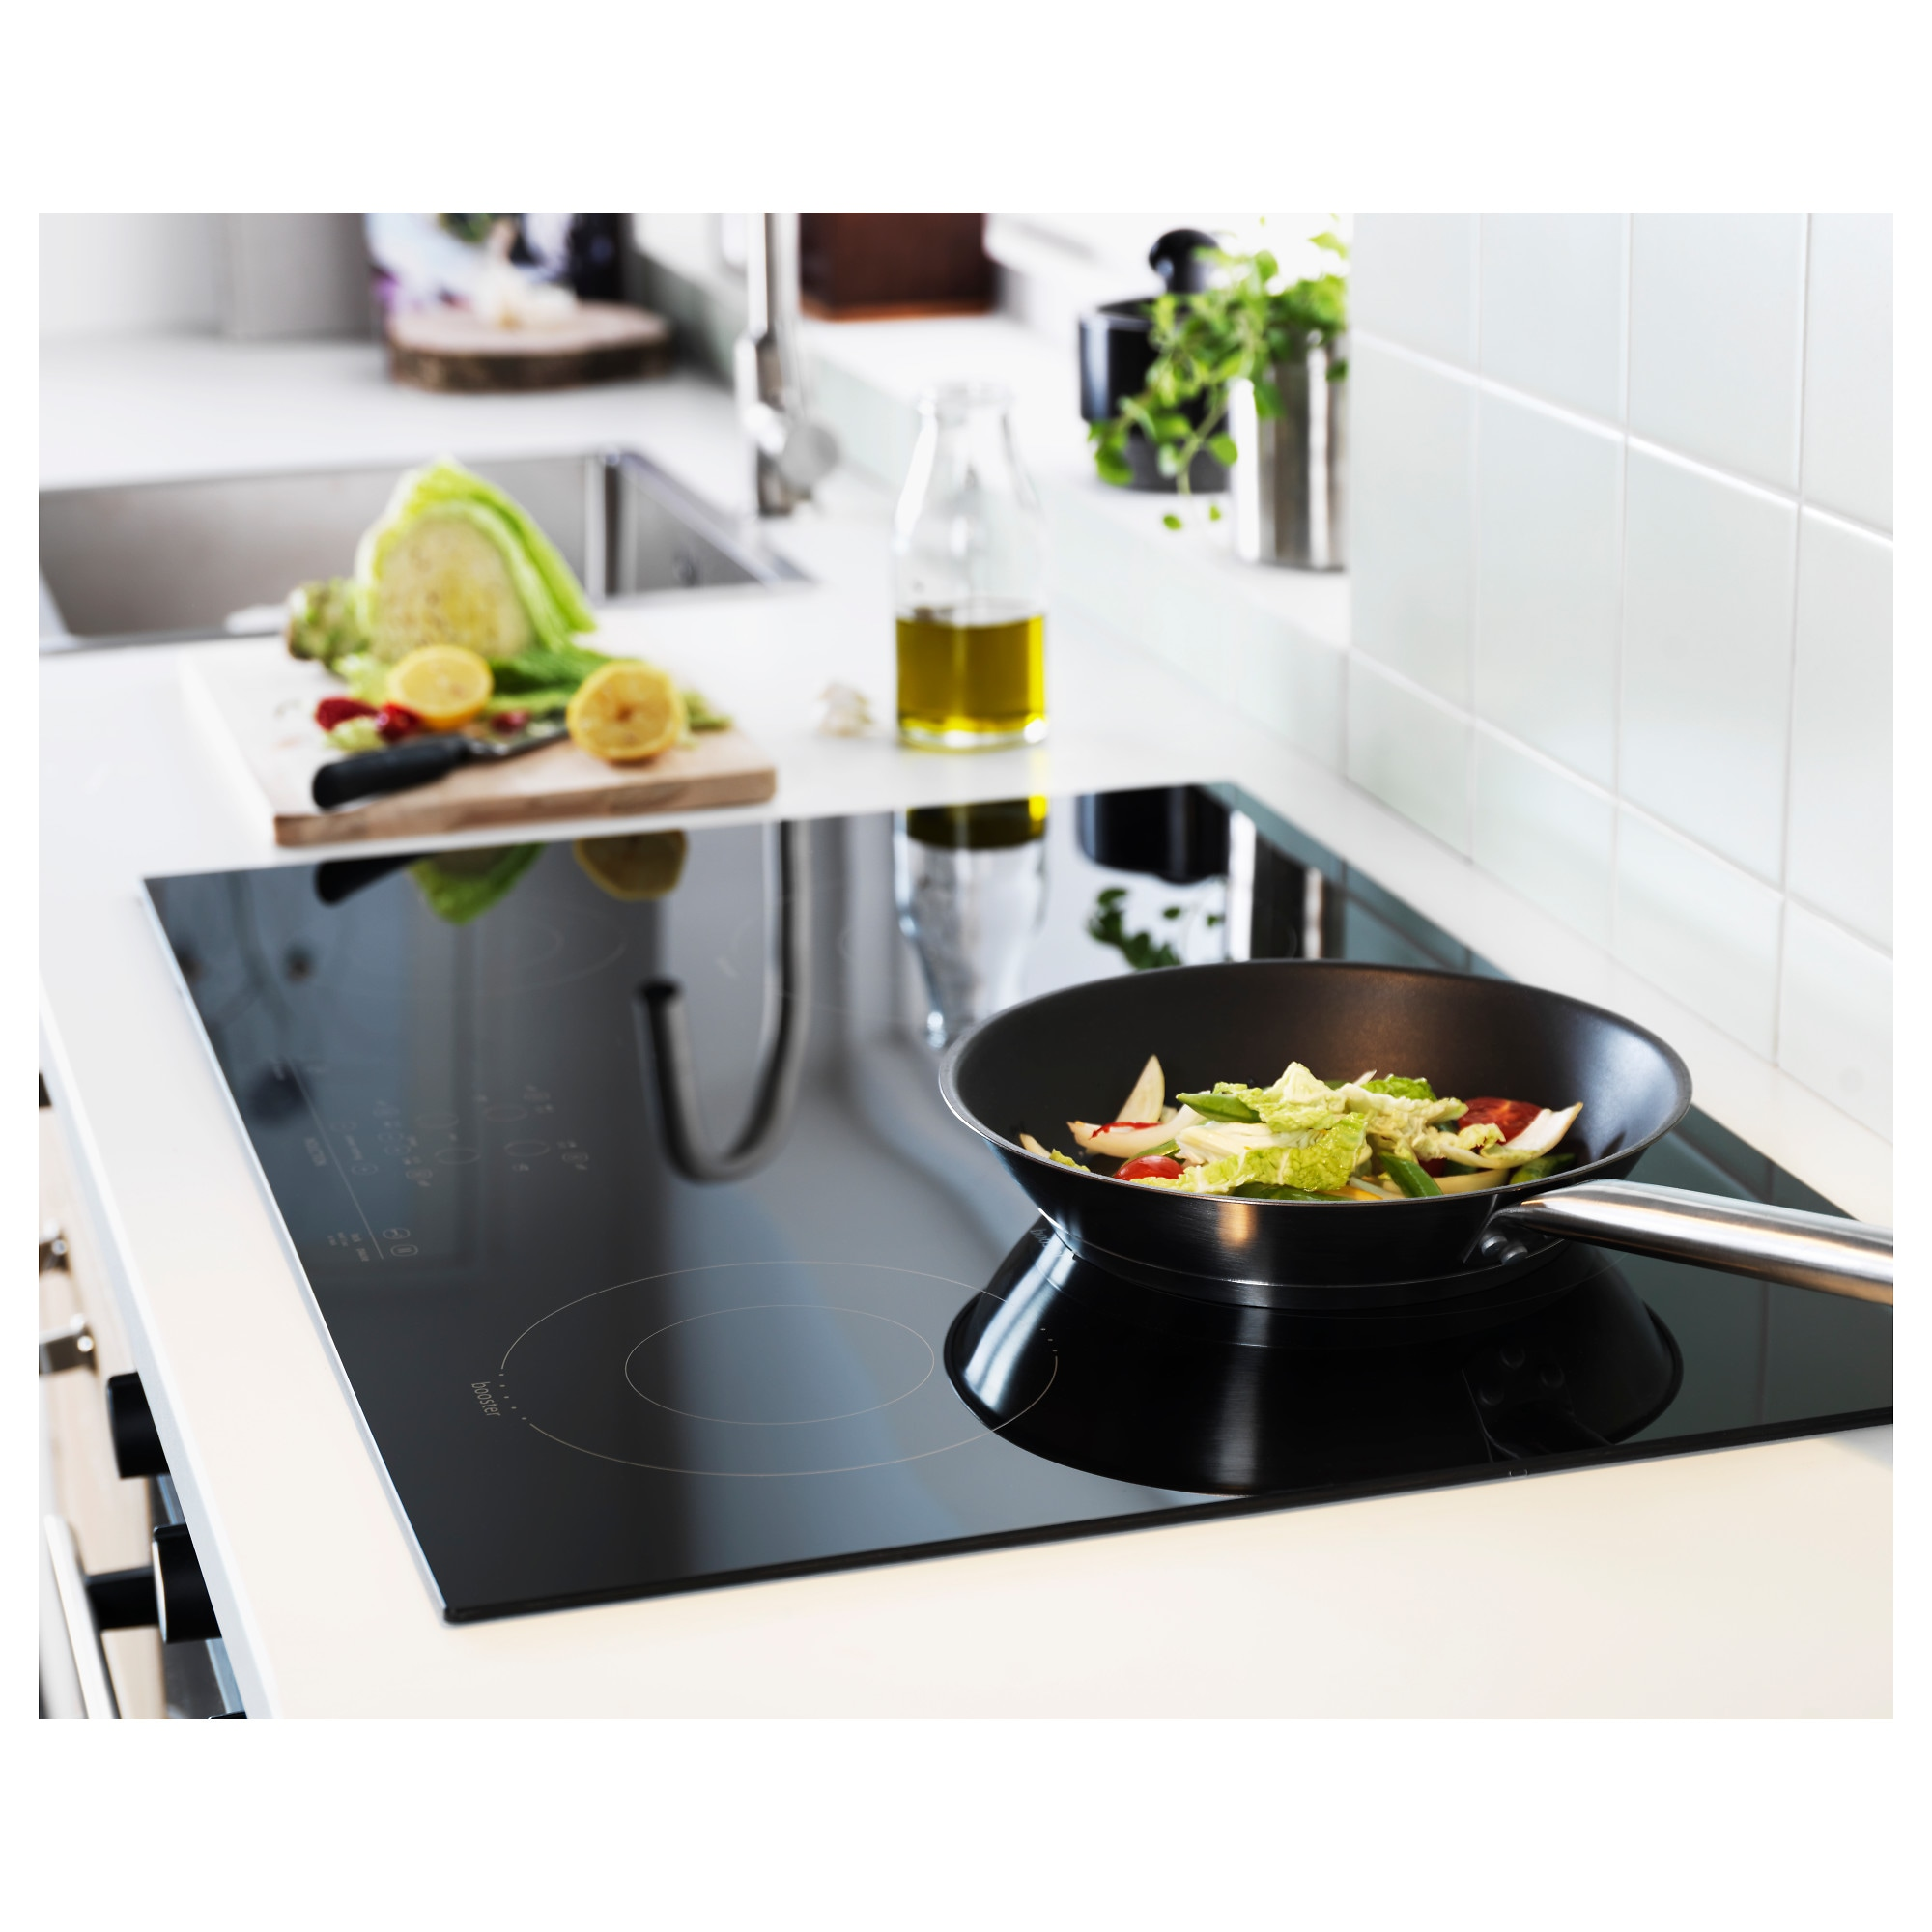 NUTID 4 Element Induction Cooktop   IKEA